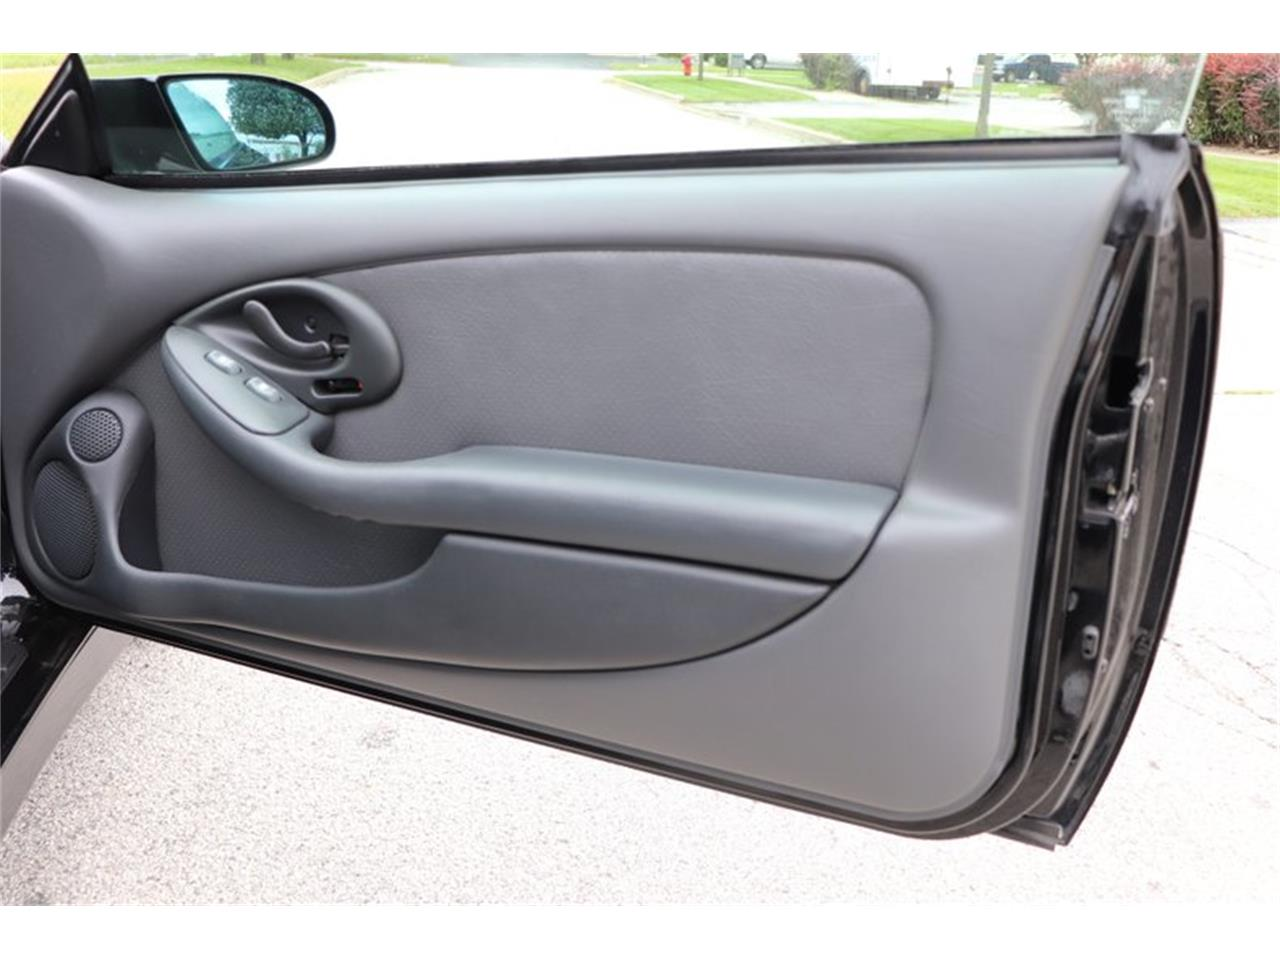 Large Picture of 1998 Pontiac Firebird Trans Am located in Alsip Illinois - $16,900.00 Offered by Midwest Car Exchange - OIXQ